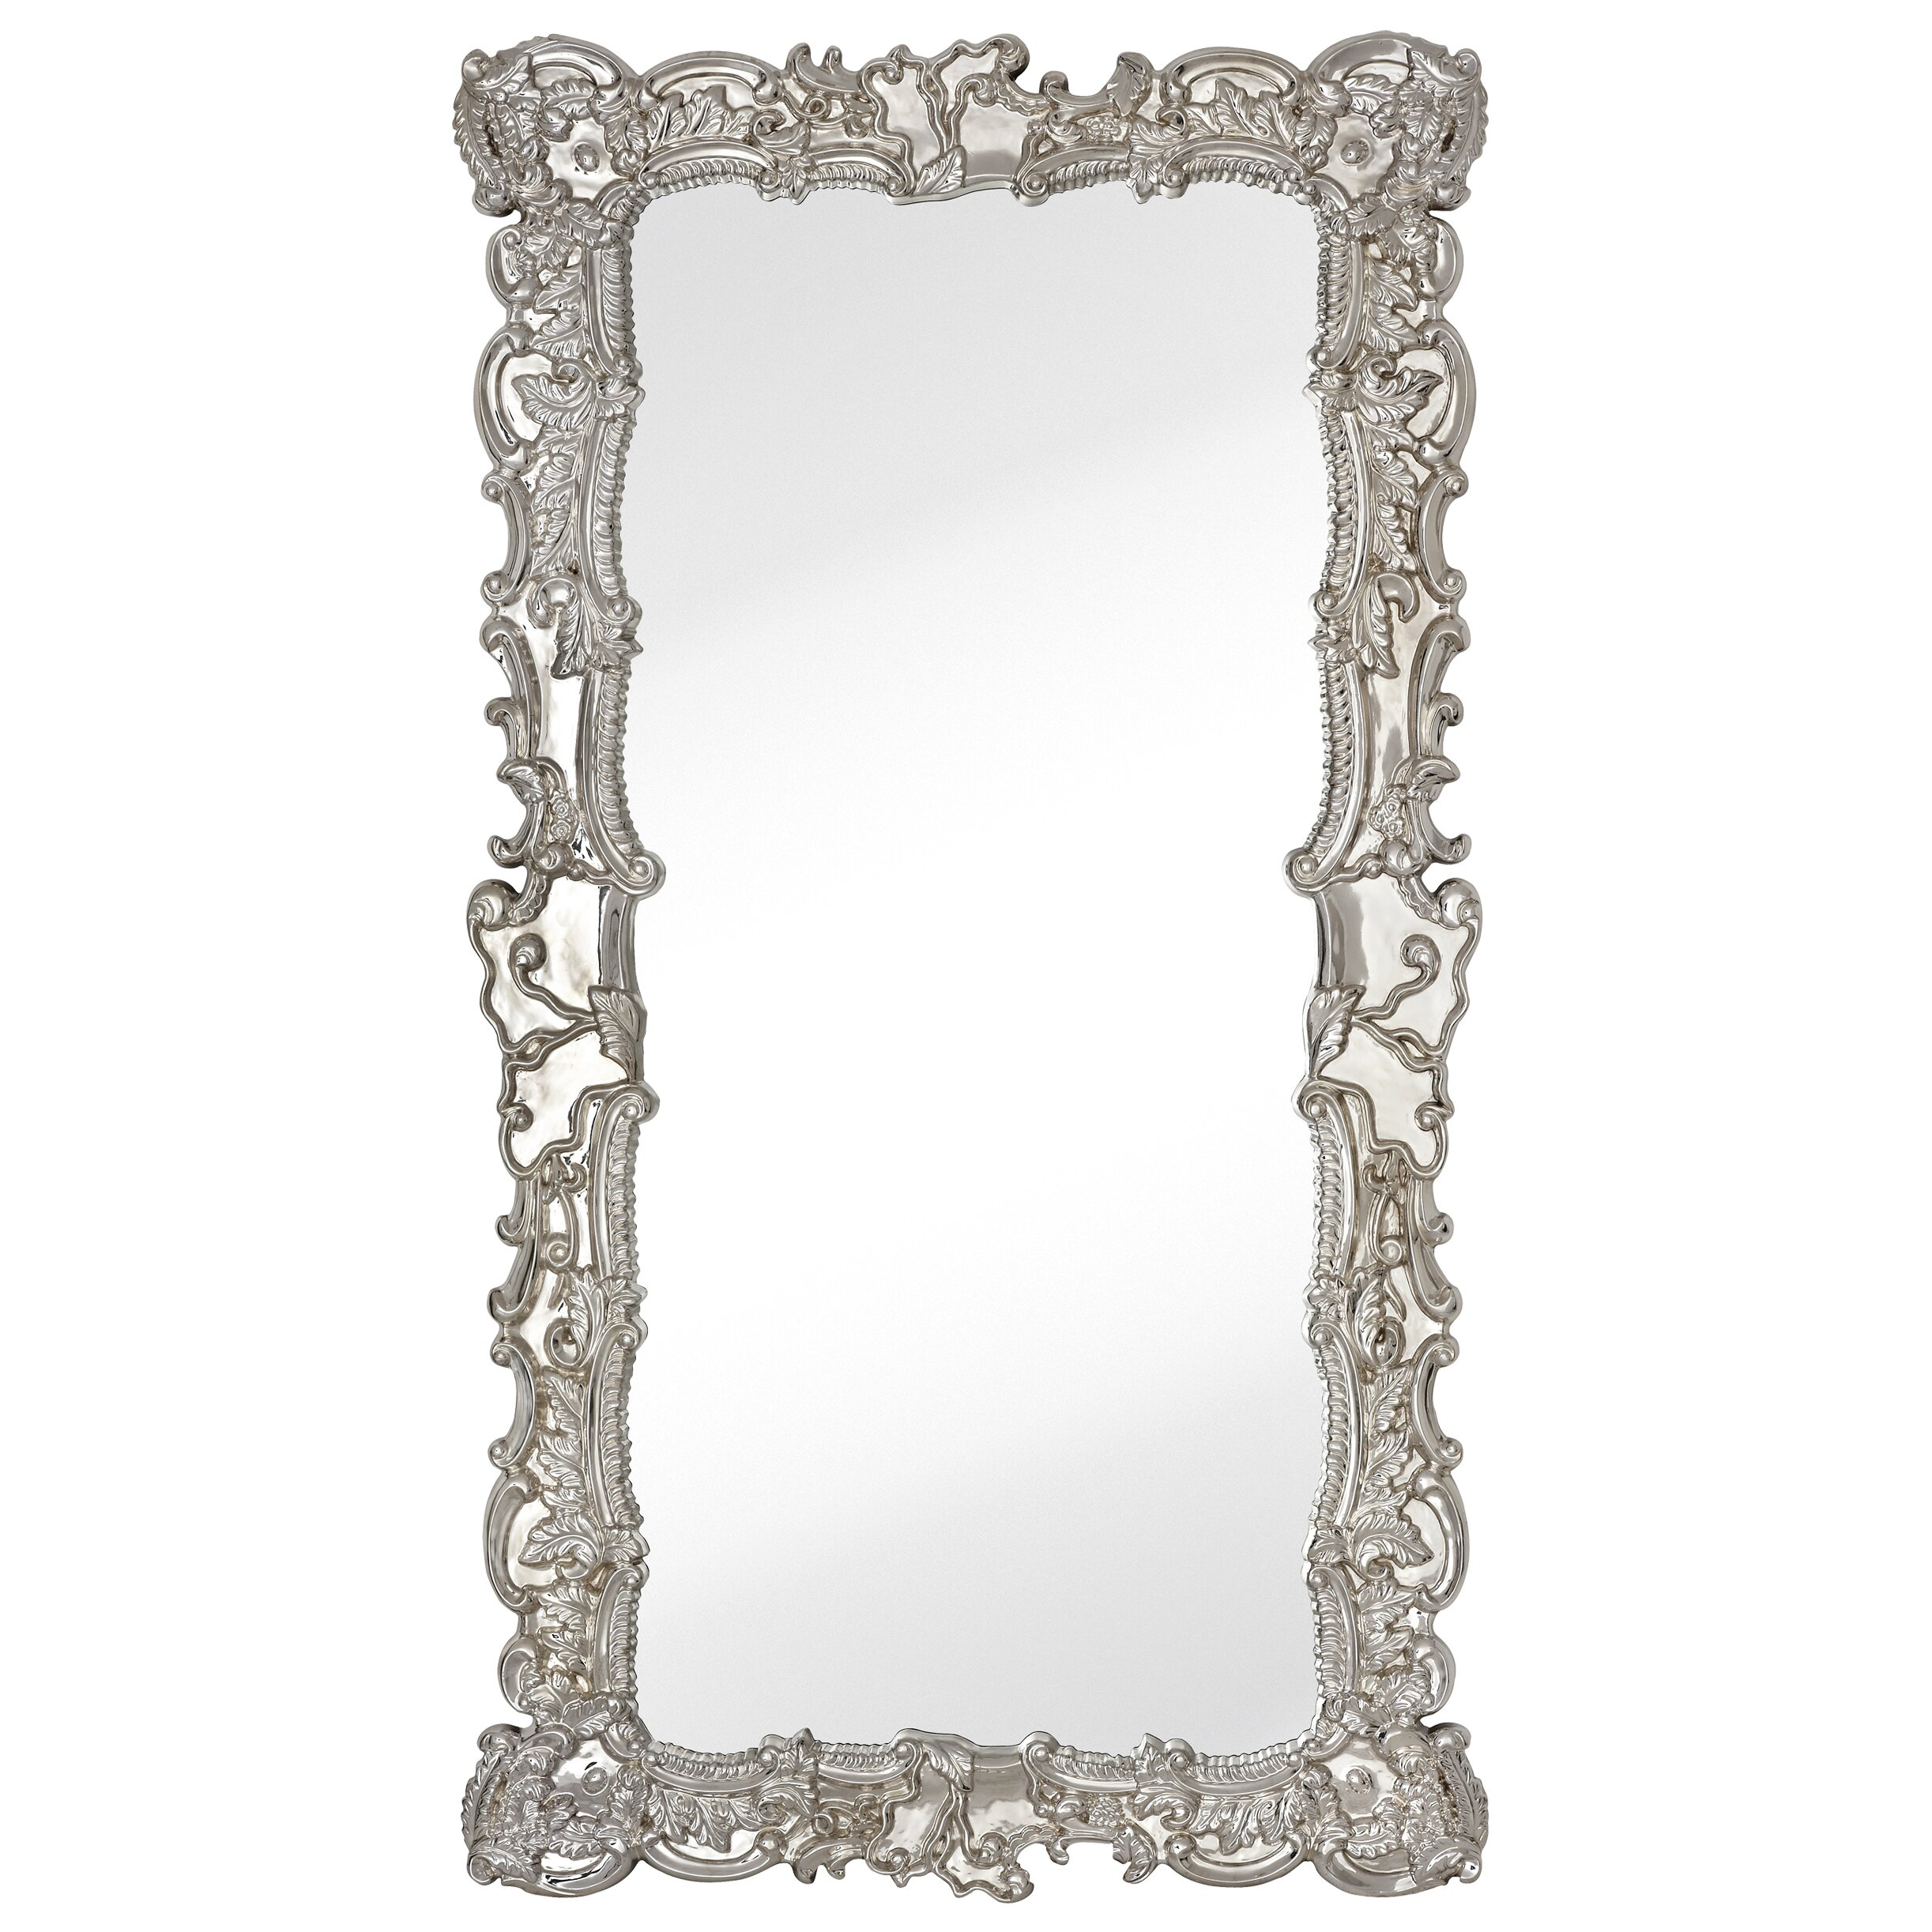 Majestic mirror extra large decorative mirror reviews for Decorative mirrors